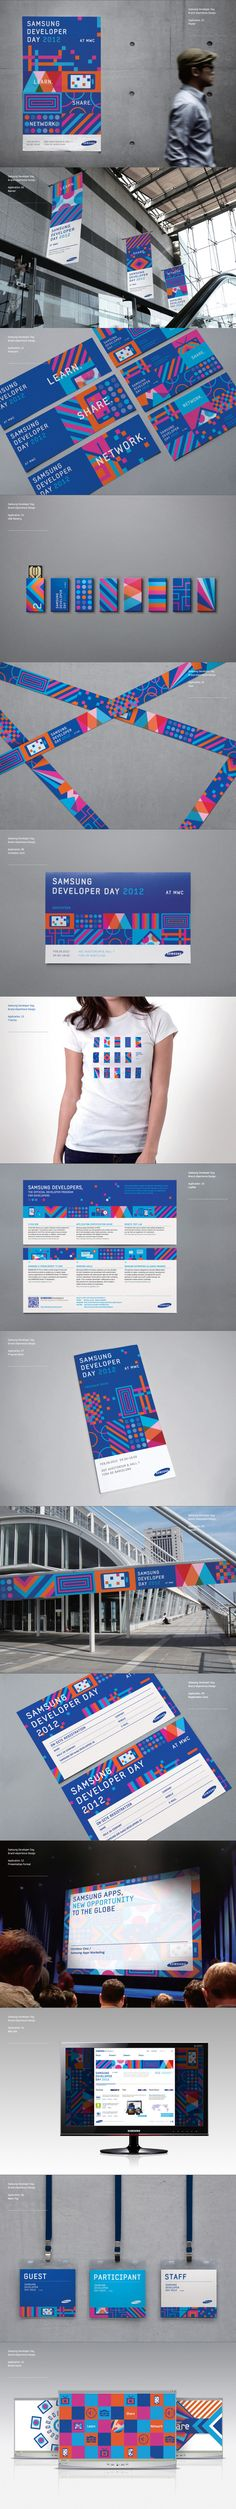 Samsung Developers Brand eXperience Design on Behance